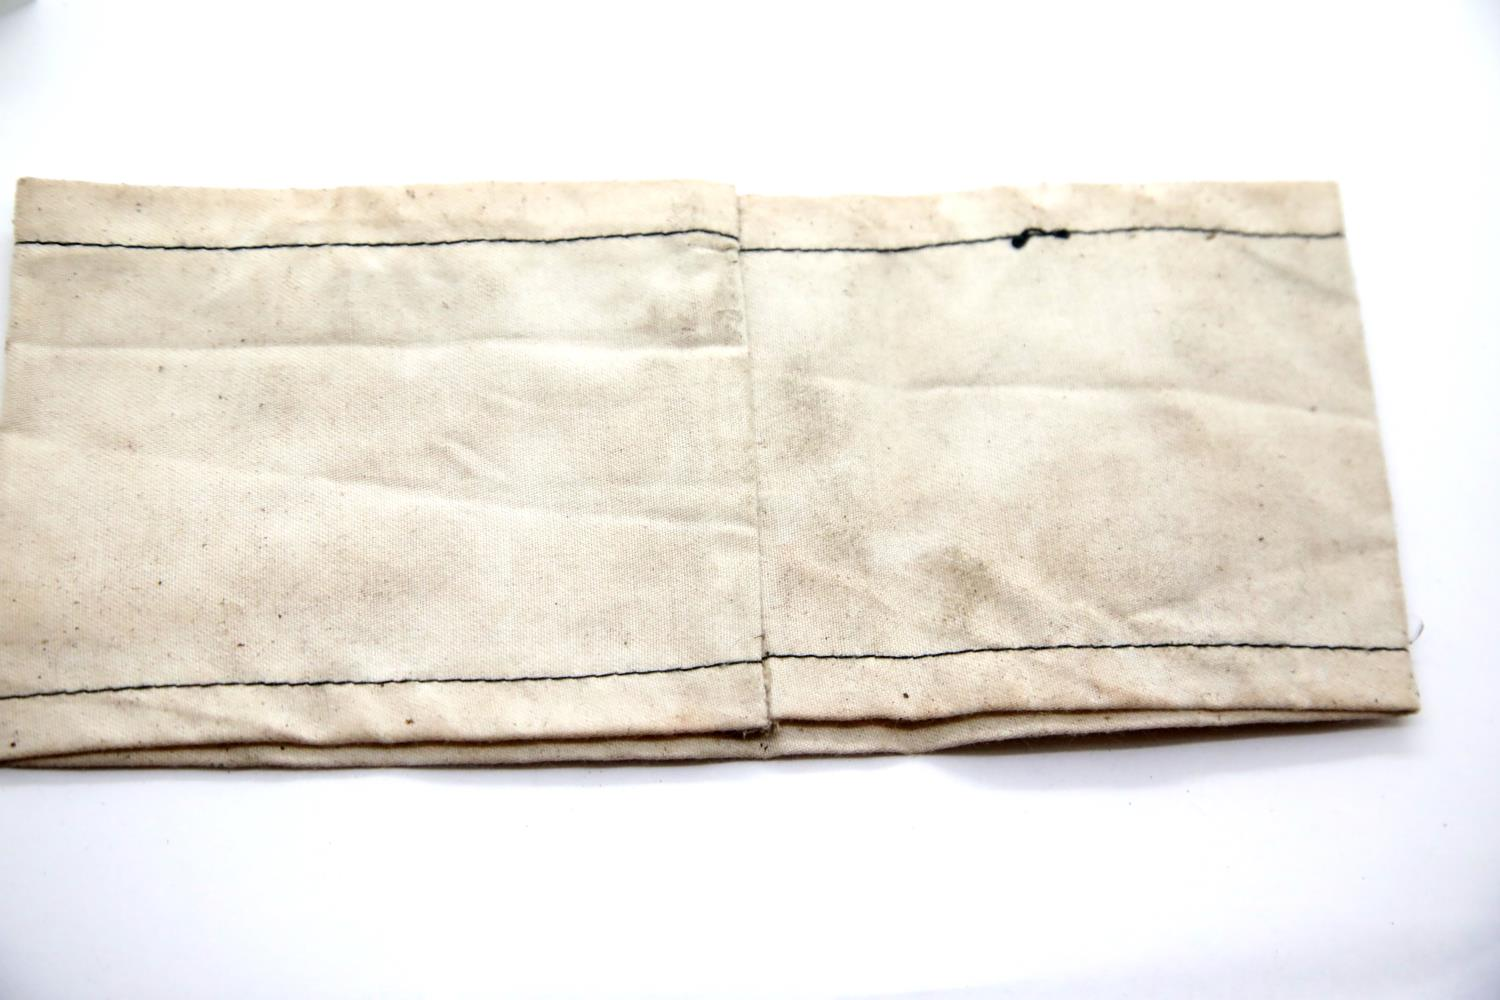 Lot 3057 - WWII type Jewish concentration camp Jood armband. P&P Group 1 (£14+VAT for the first lot and £1+